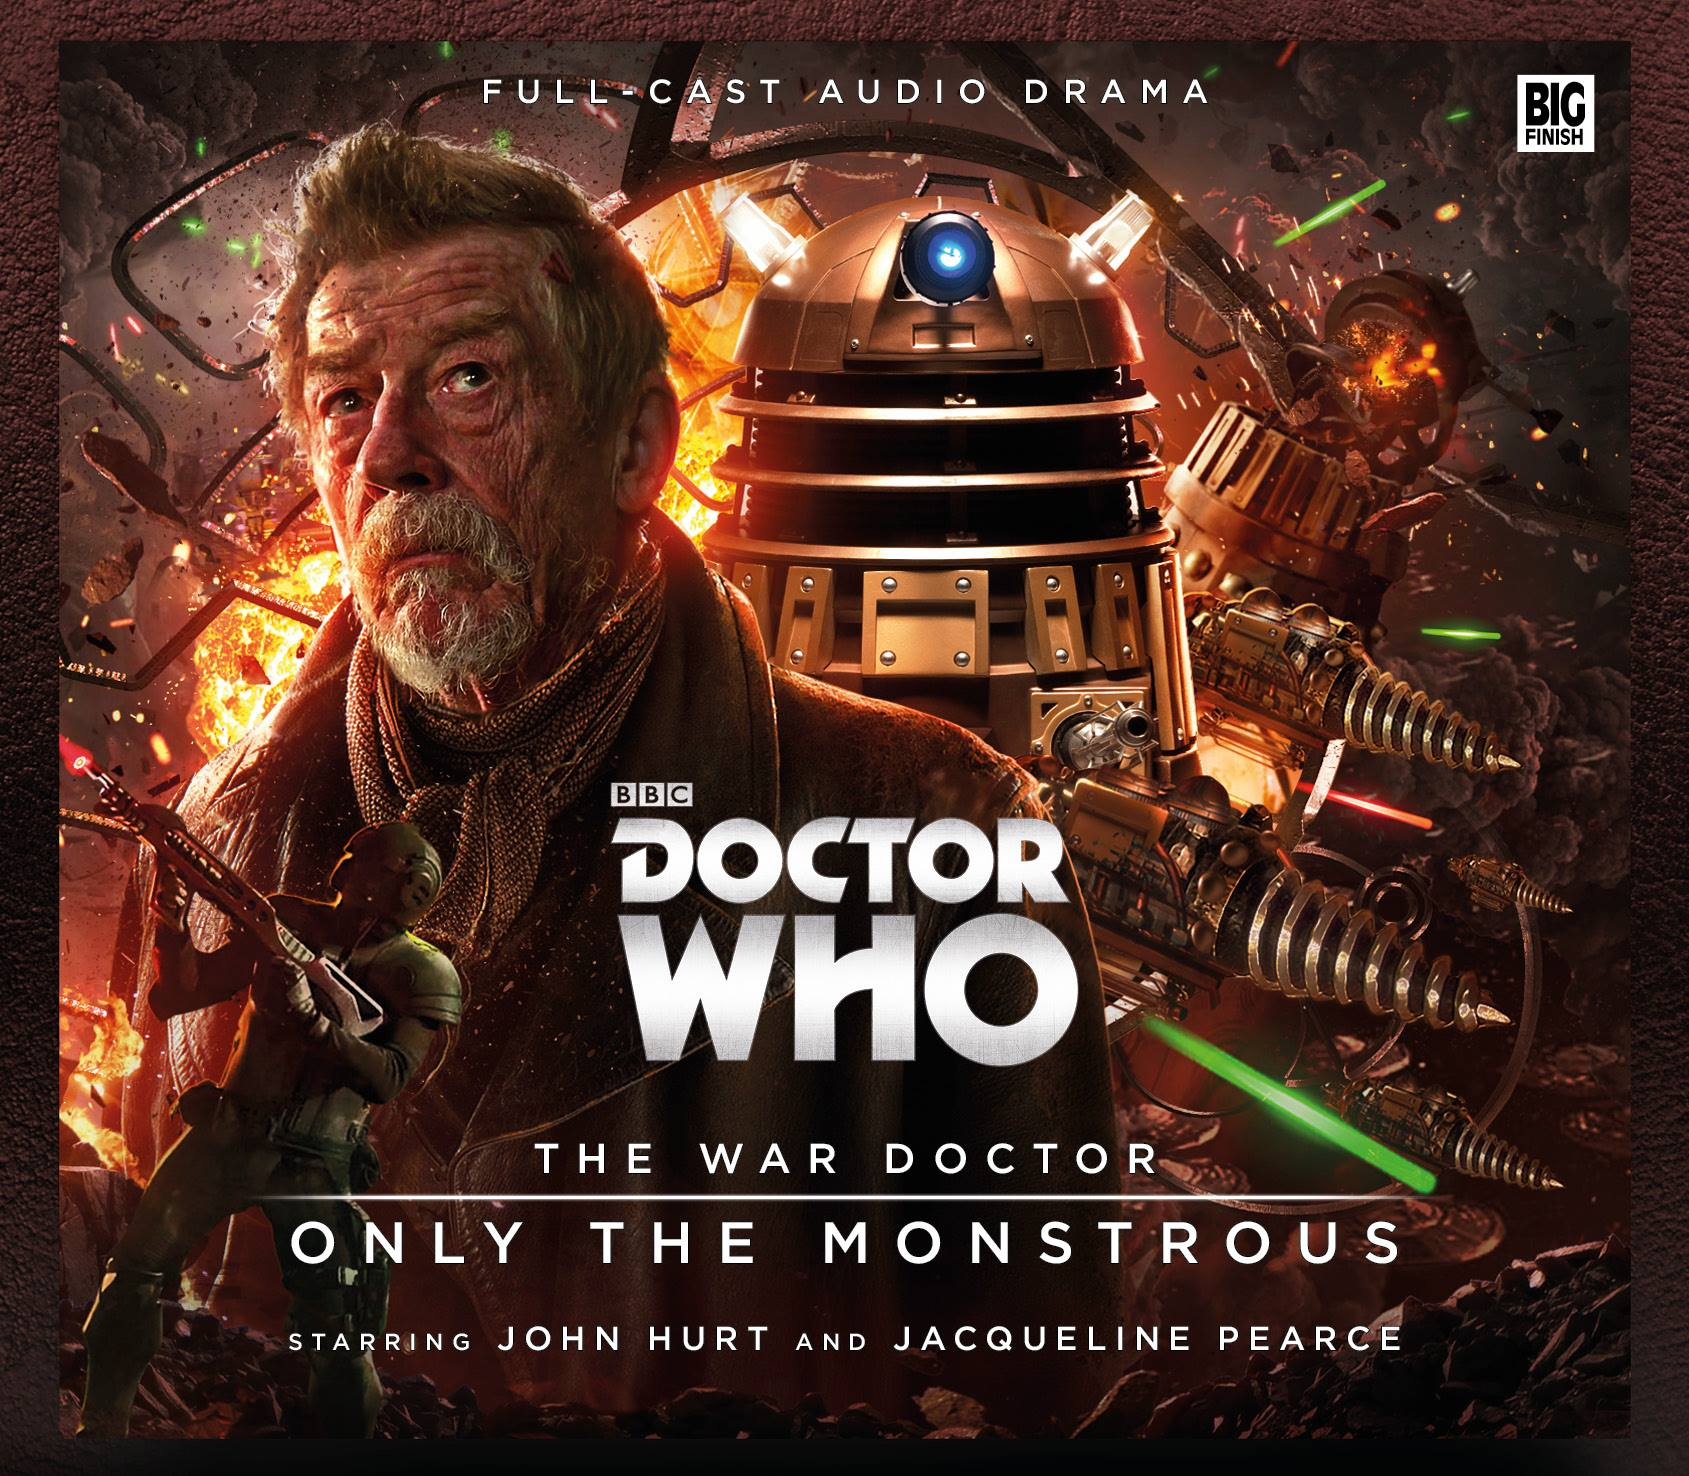 Big-Finish-The-War-Doctor-1-Only-the-Monstrous-Doctor-Who-Brasil